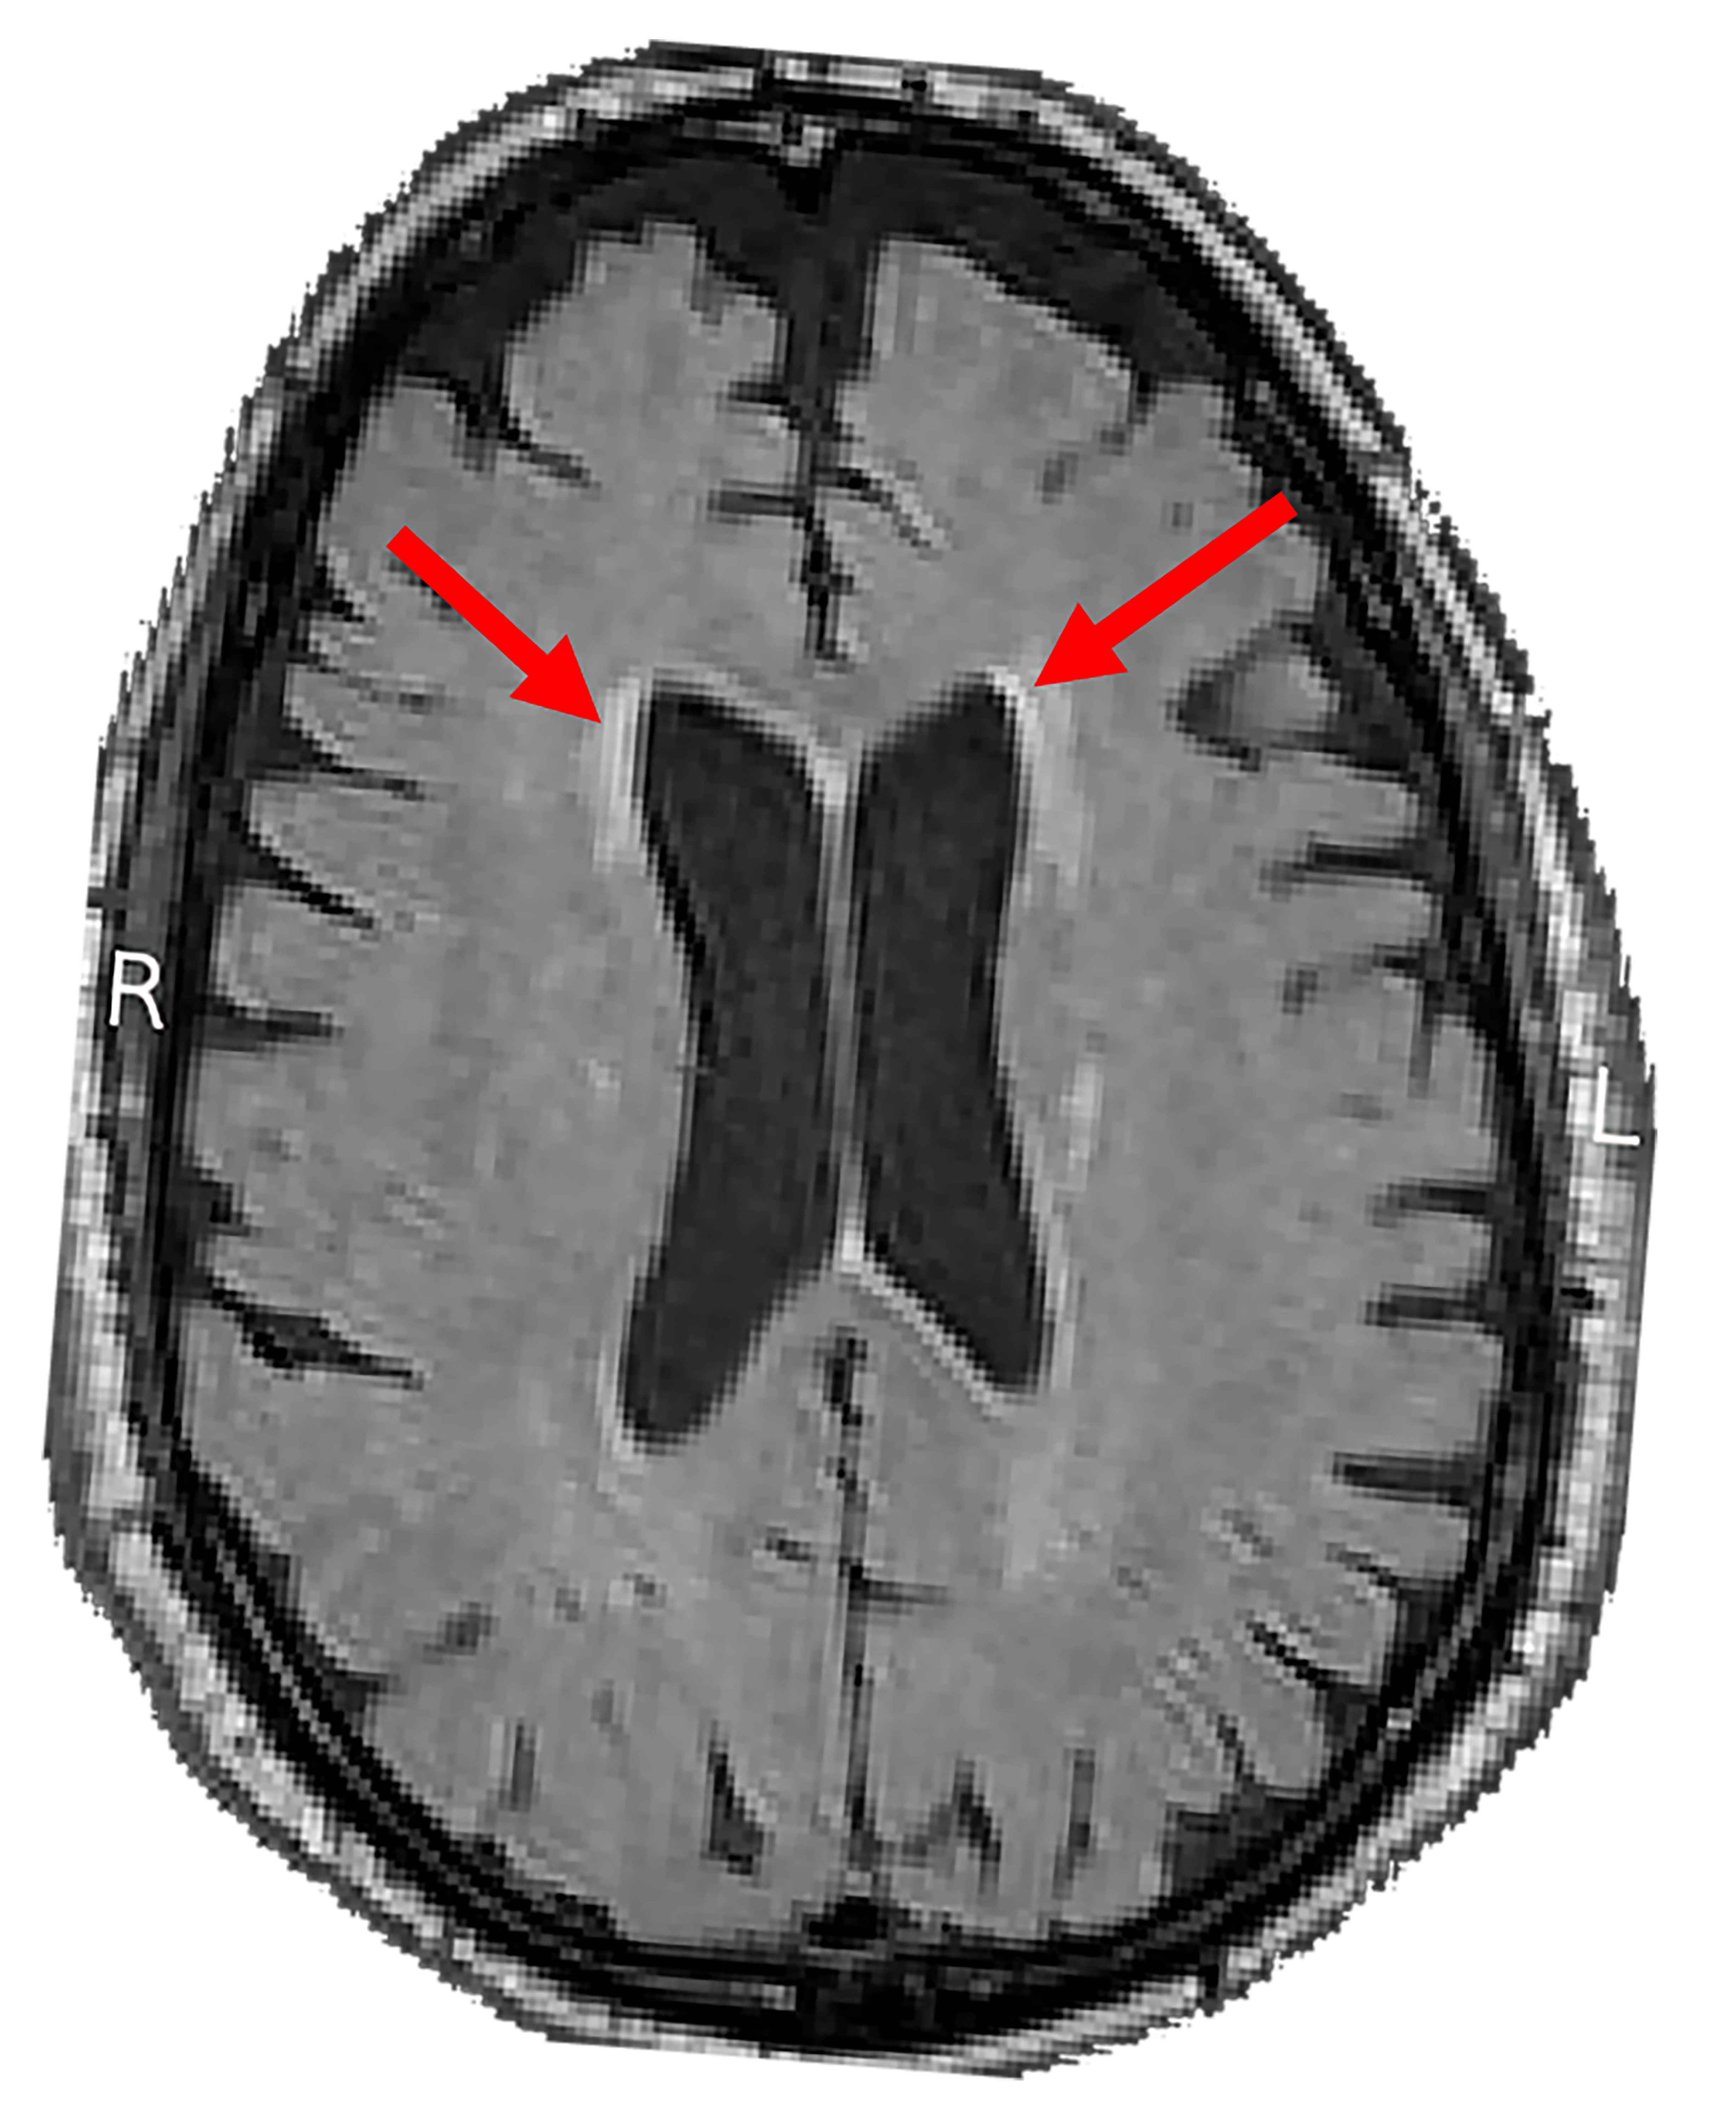 NIH funded study found link between blood pressure and white matter lesions. Arrows highlight examples of lesions seen on magnetic resonance imaging brain scans.